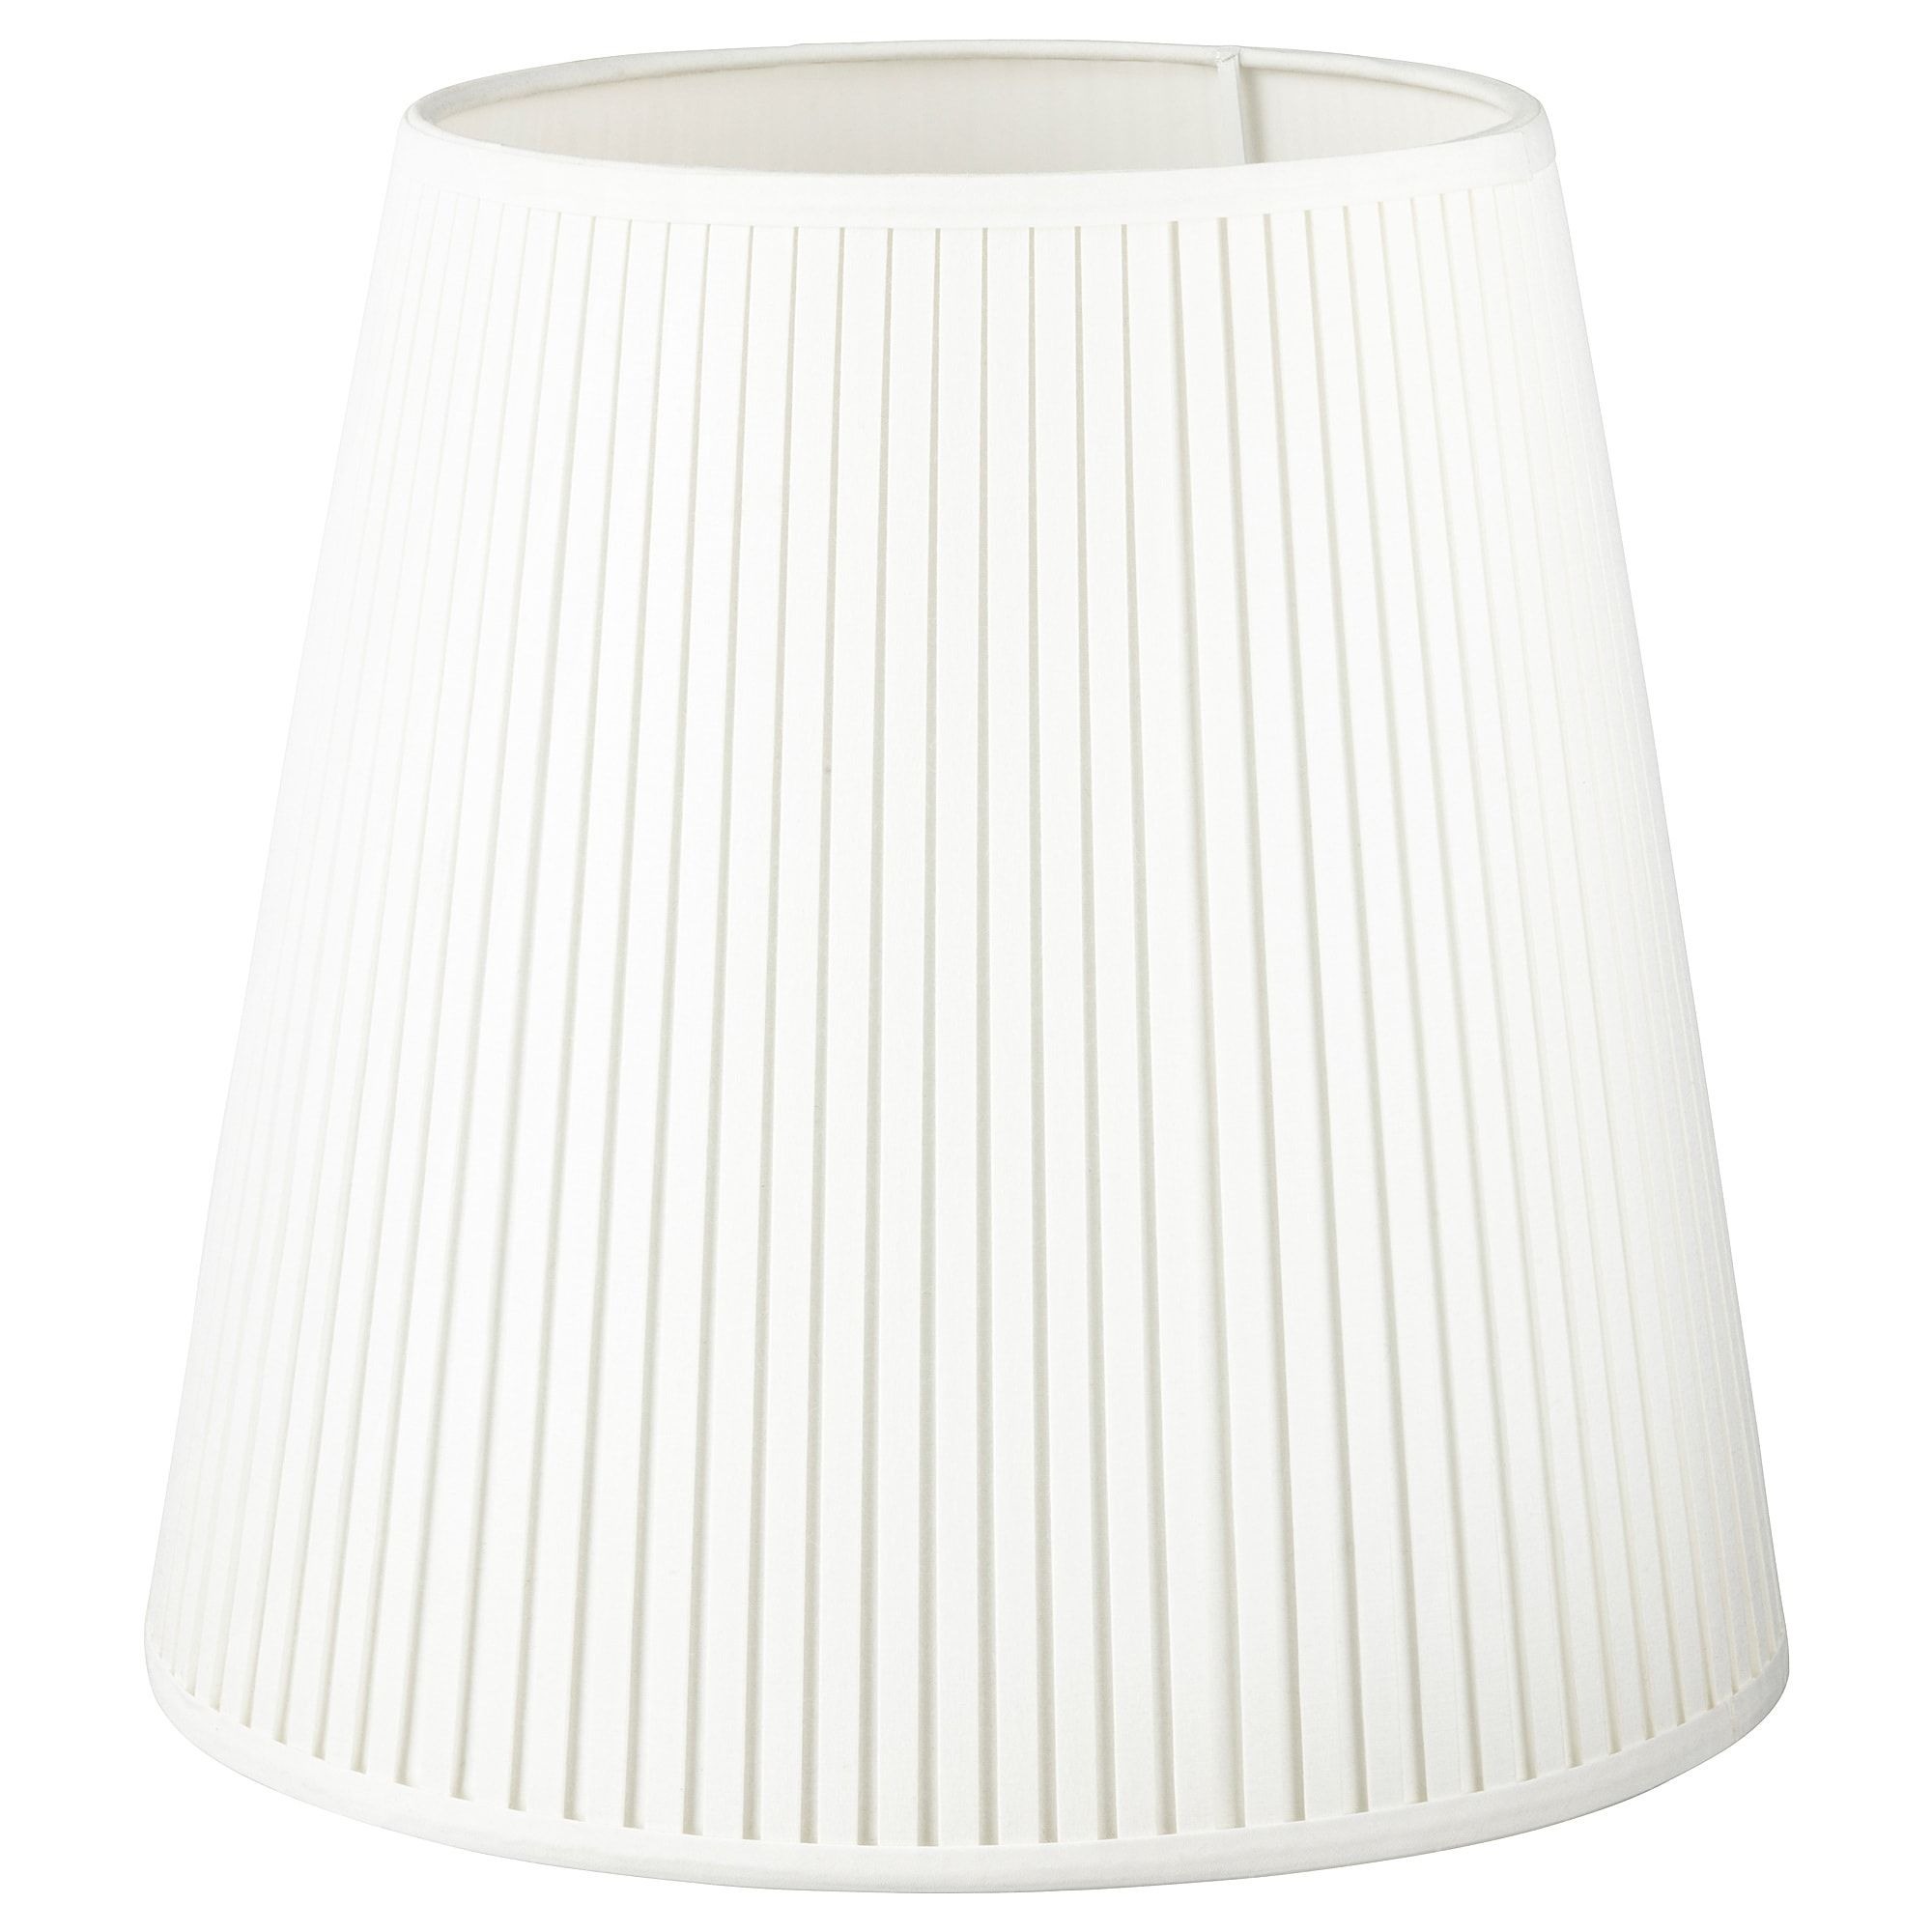 Ikea Us Furniture And Home Furnishings Lamp Shade White Lamp Shade Lamp